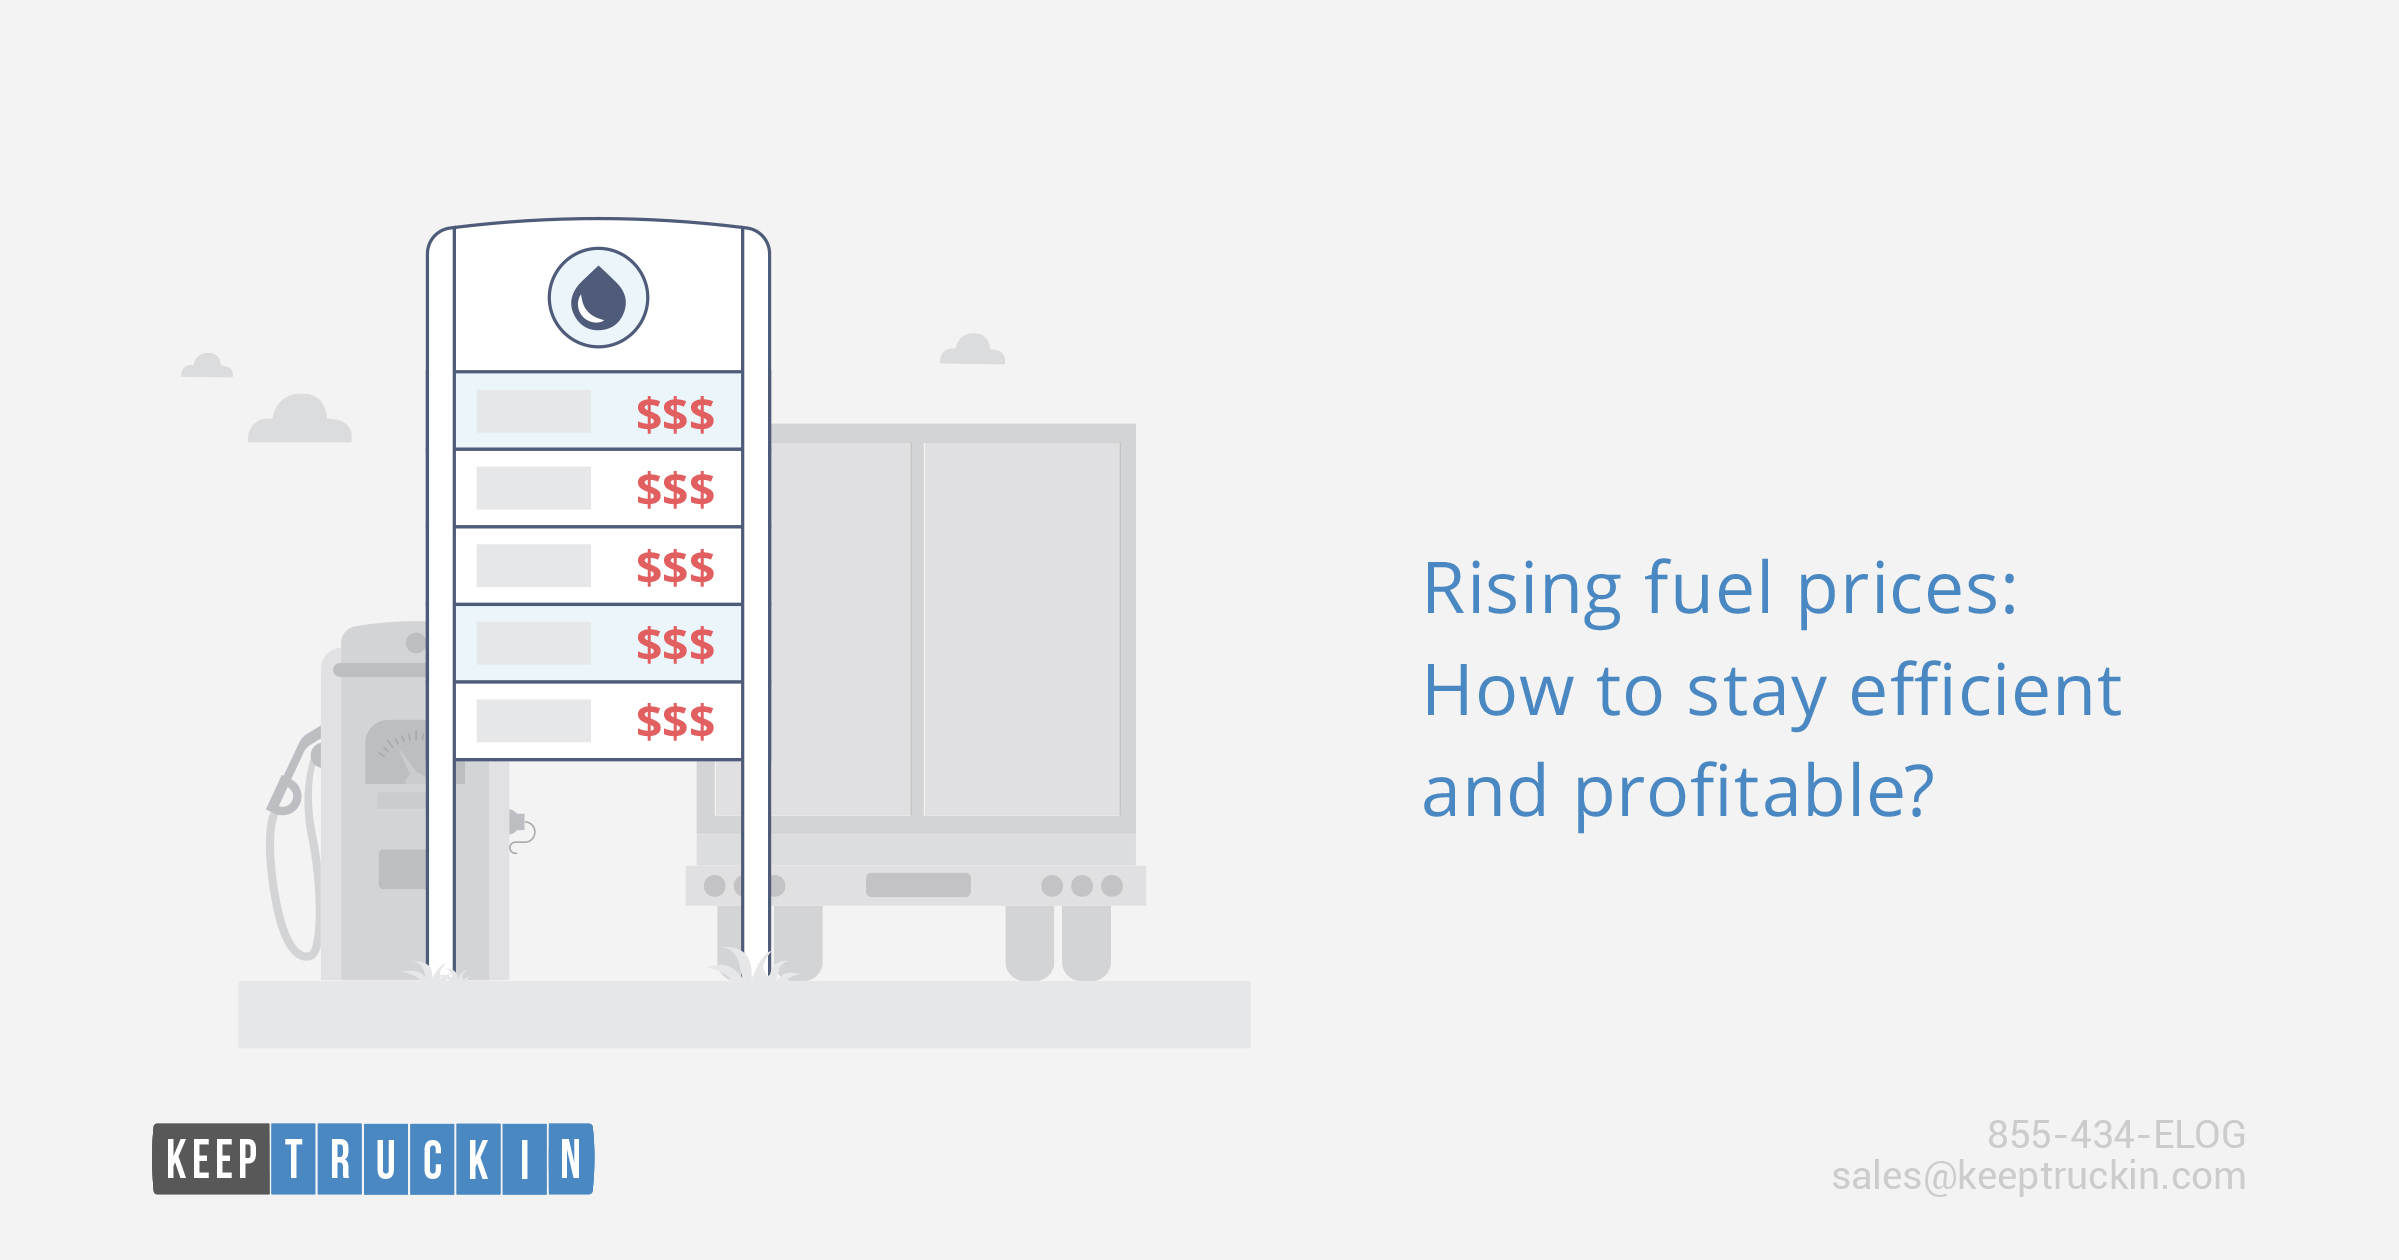 Rising fuel prices: How to stay efficient and profitable